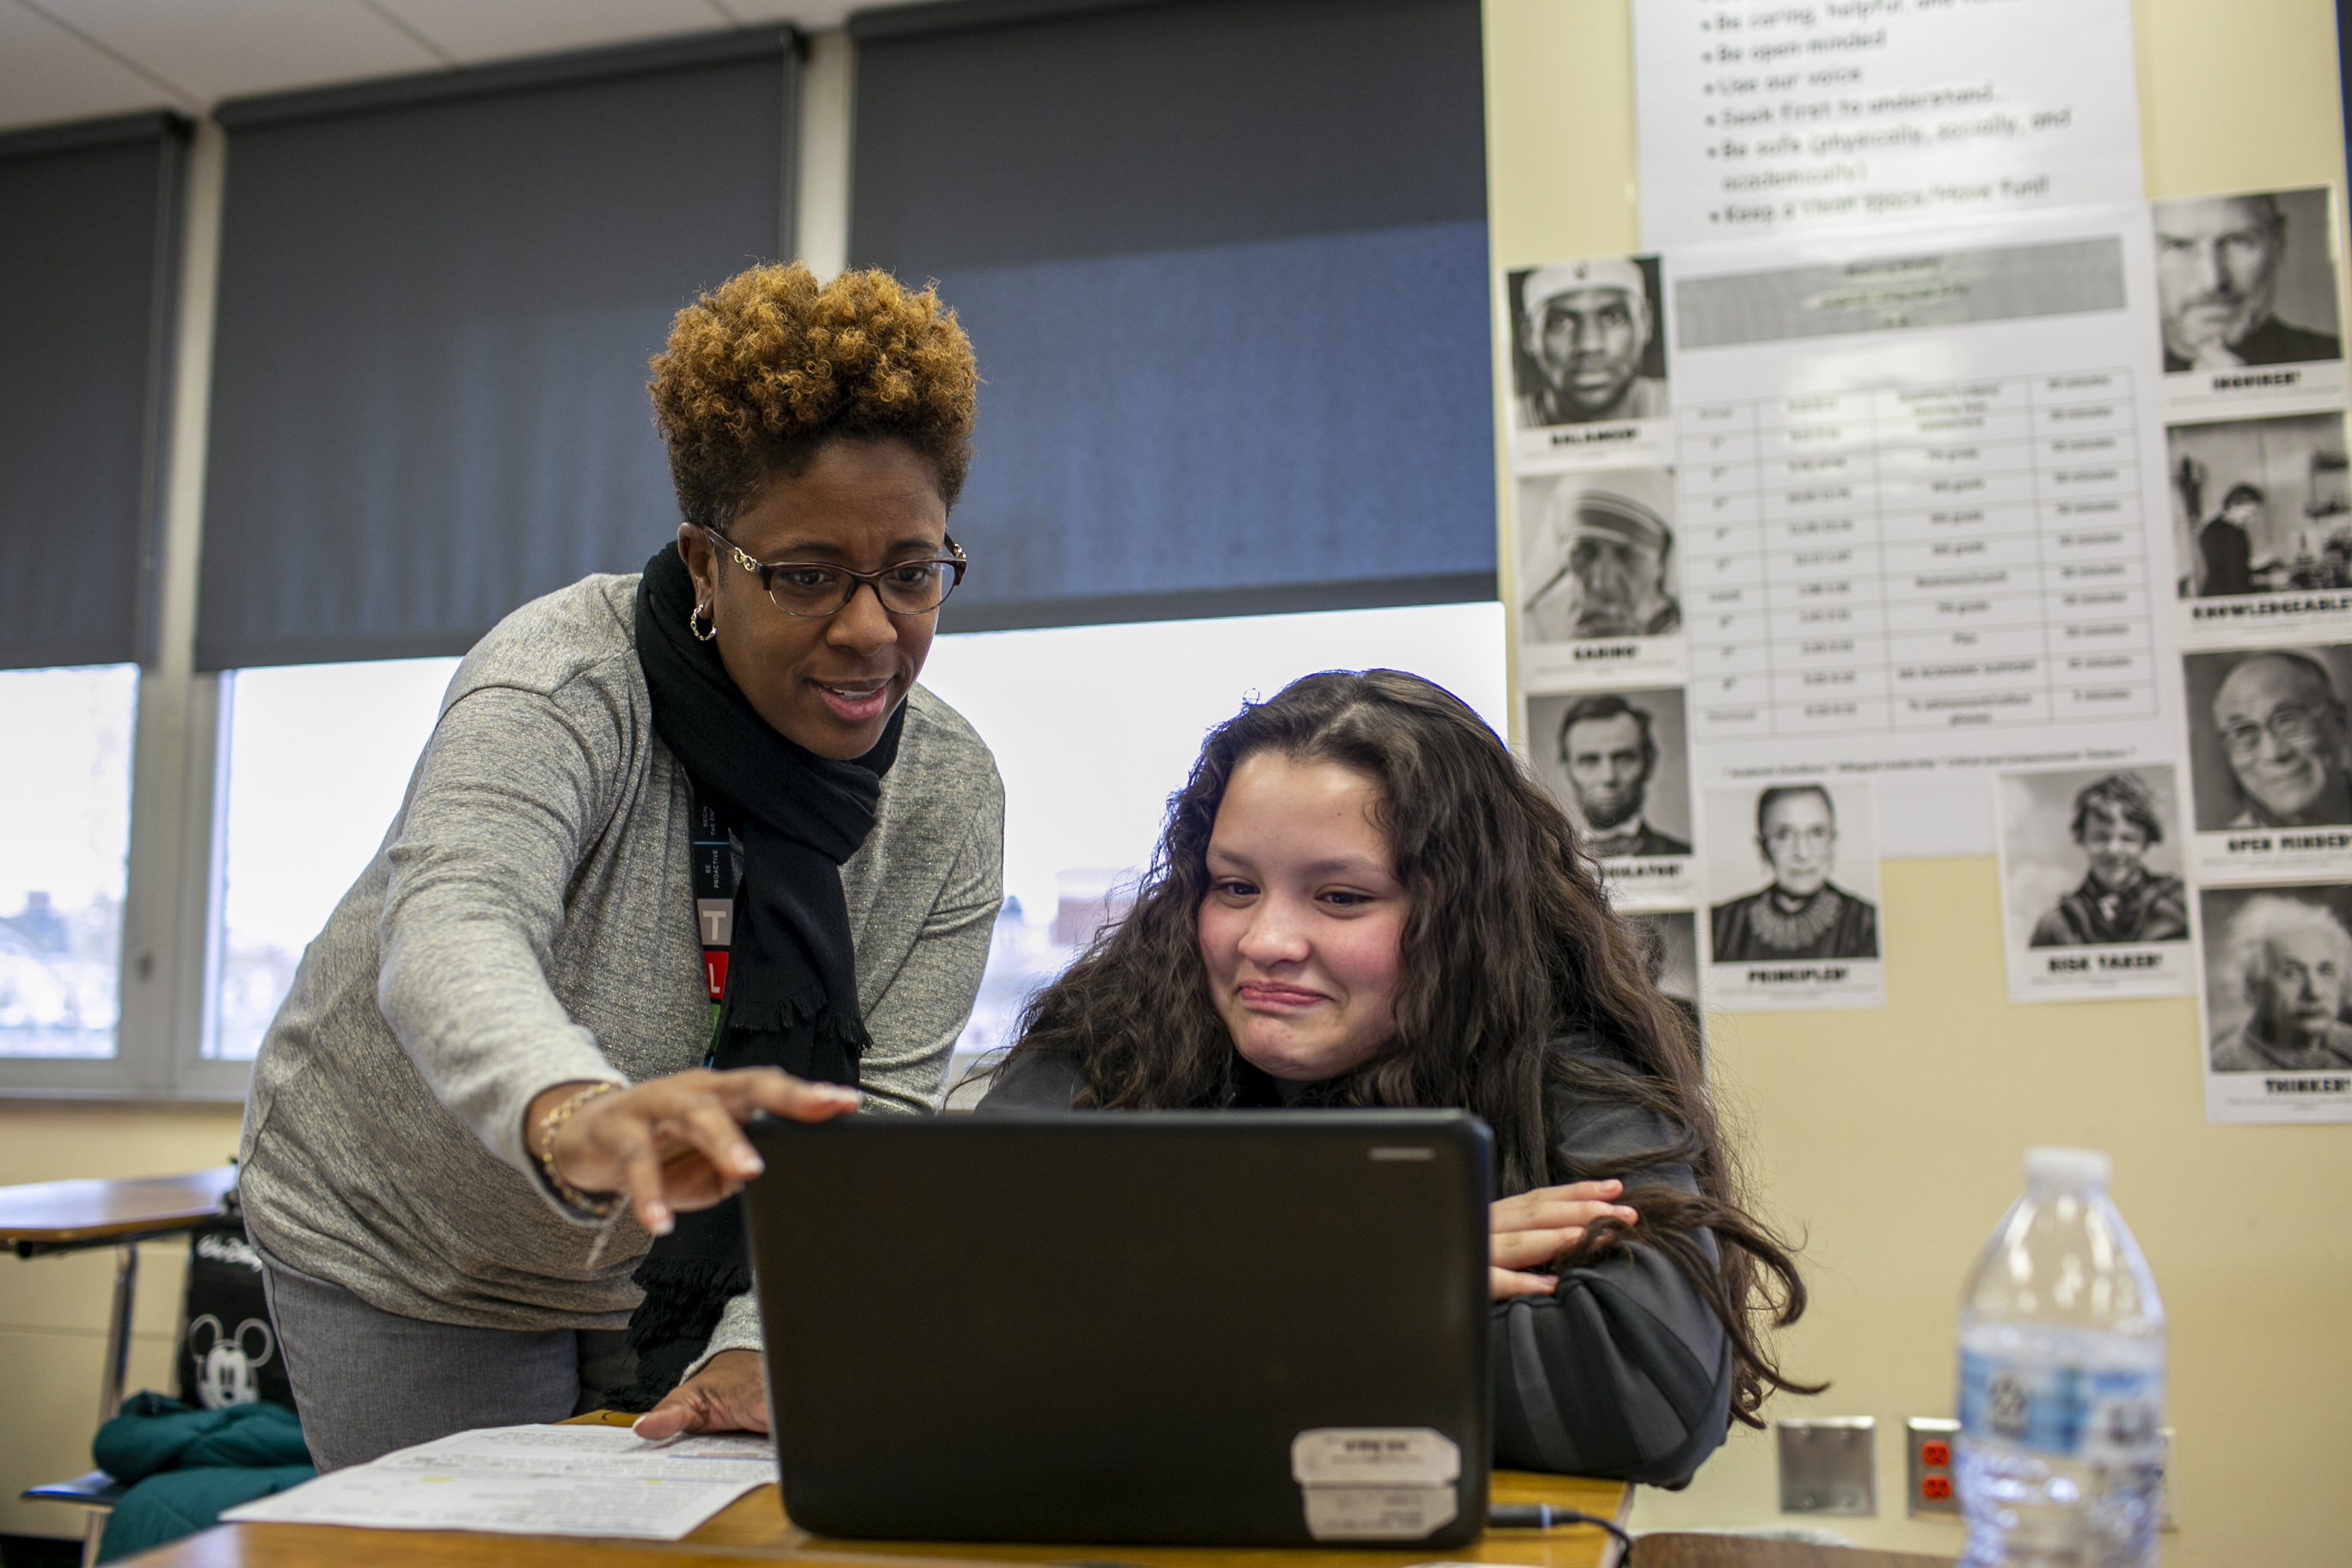 Across the country, more students—some beginning in kindergarten—are studying computer science as a growing number of state implement computer science standards.